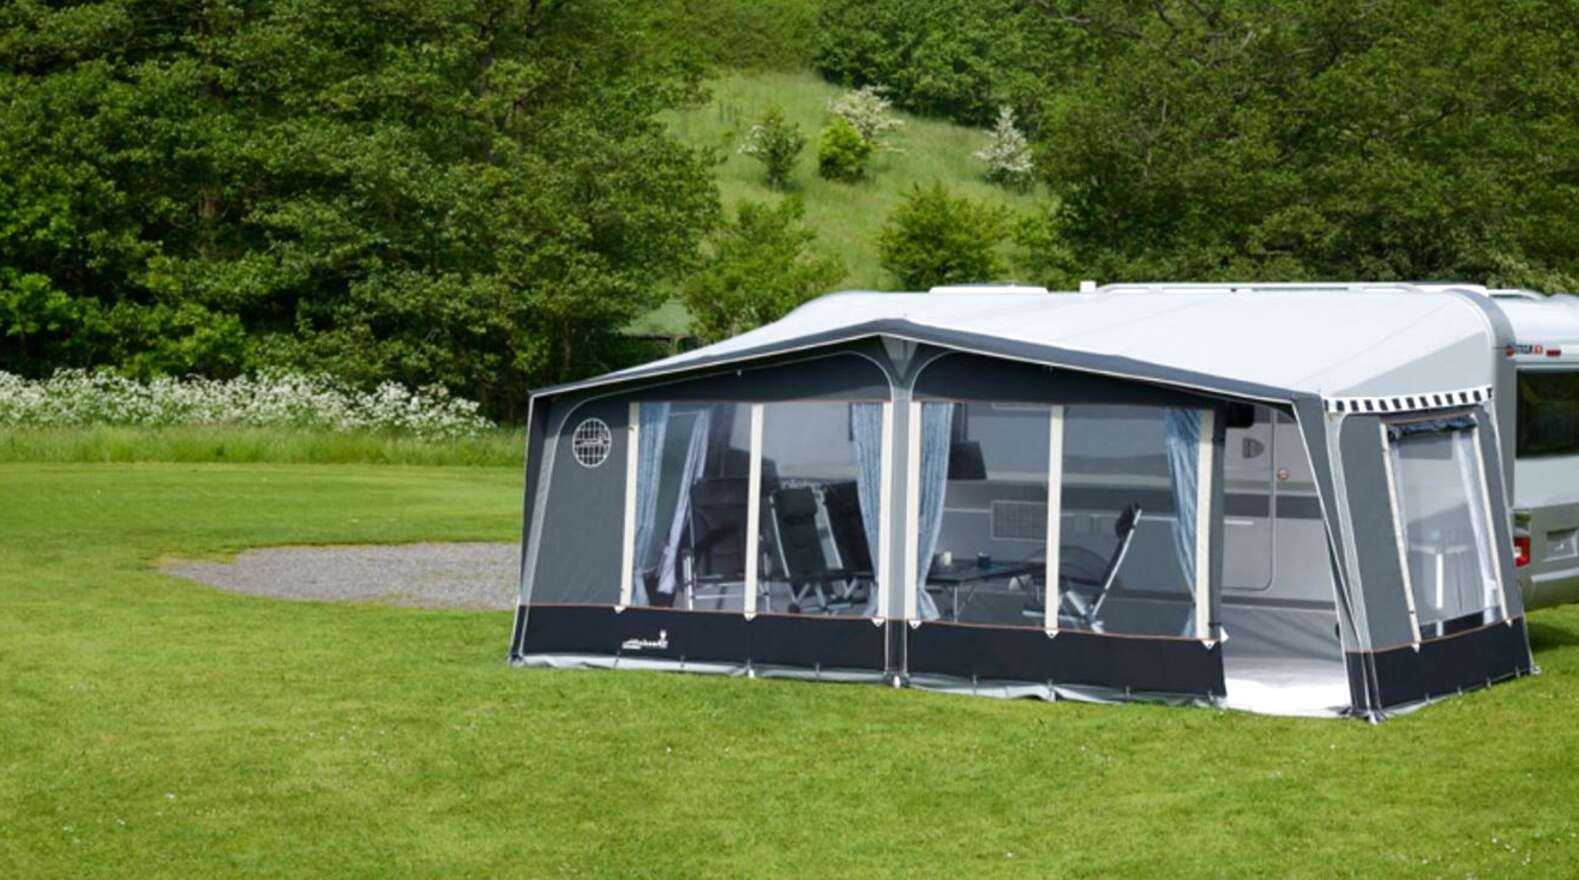 1025 Awning for sale in UK | 63 second-hand 1025 Awnings